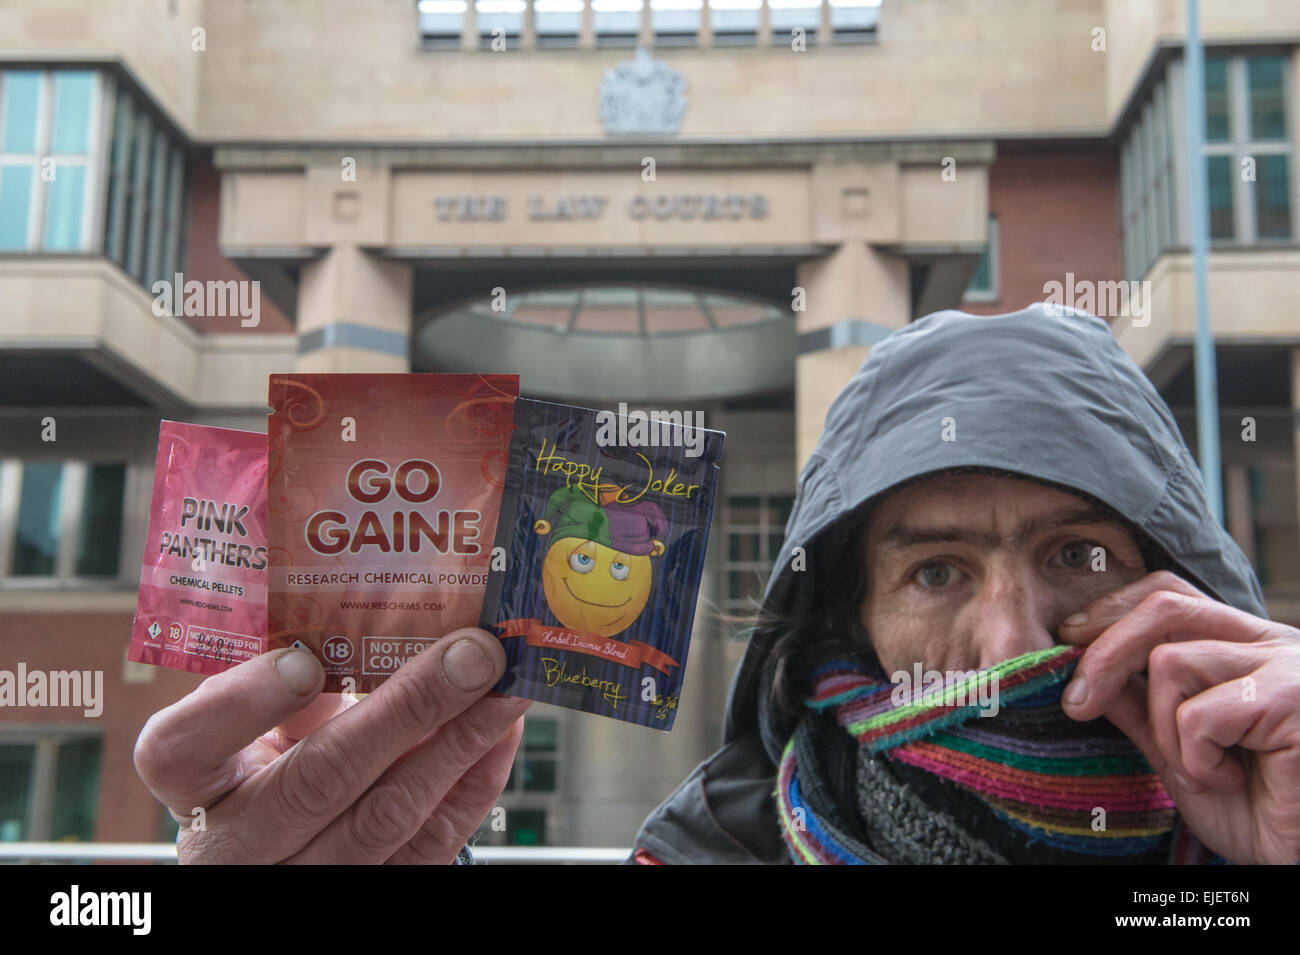 A dealer holds a selection of Legal Highs including Pink Panthers, Go Gaine and Happy Joker. - Stock Image